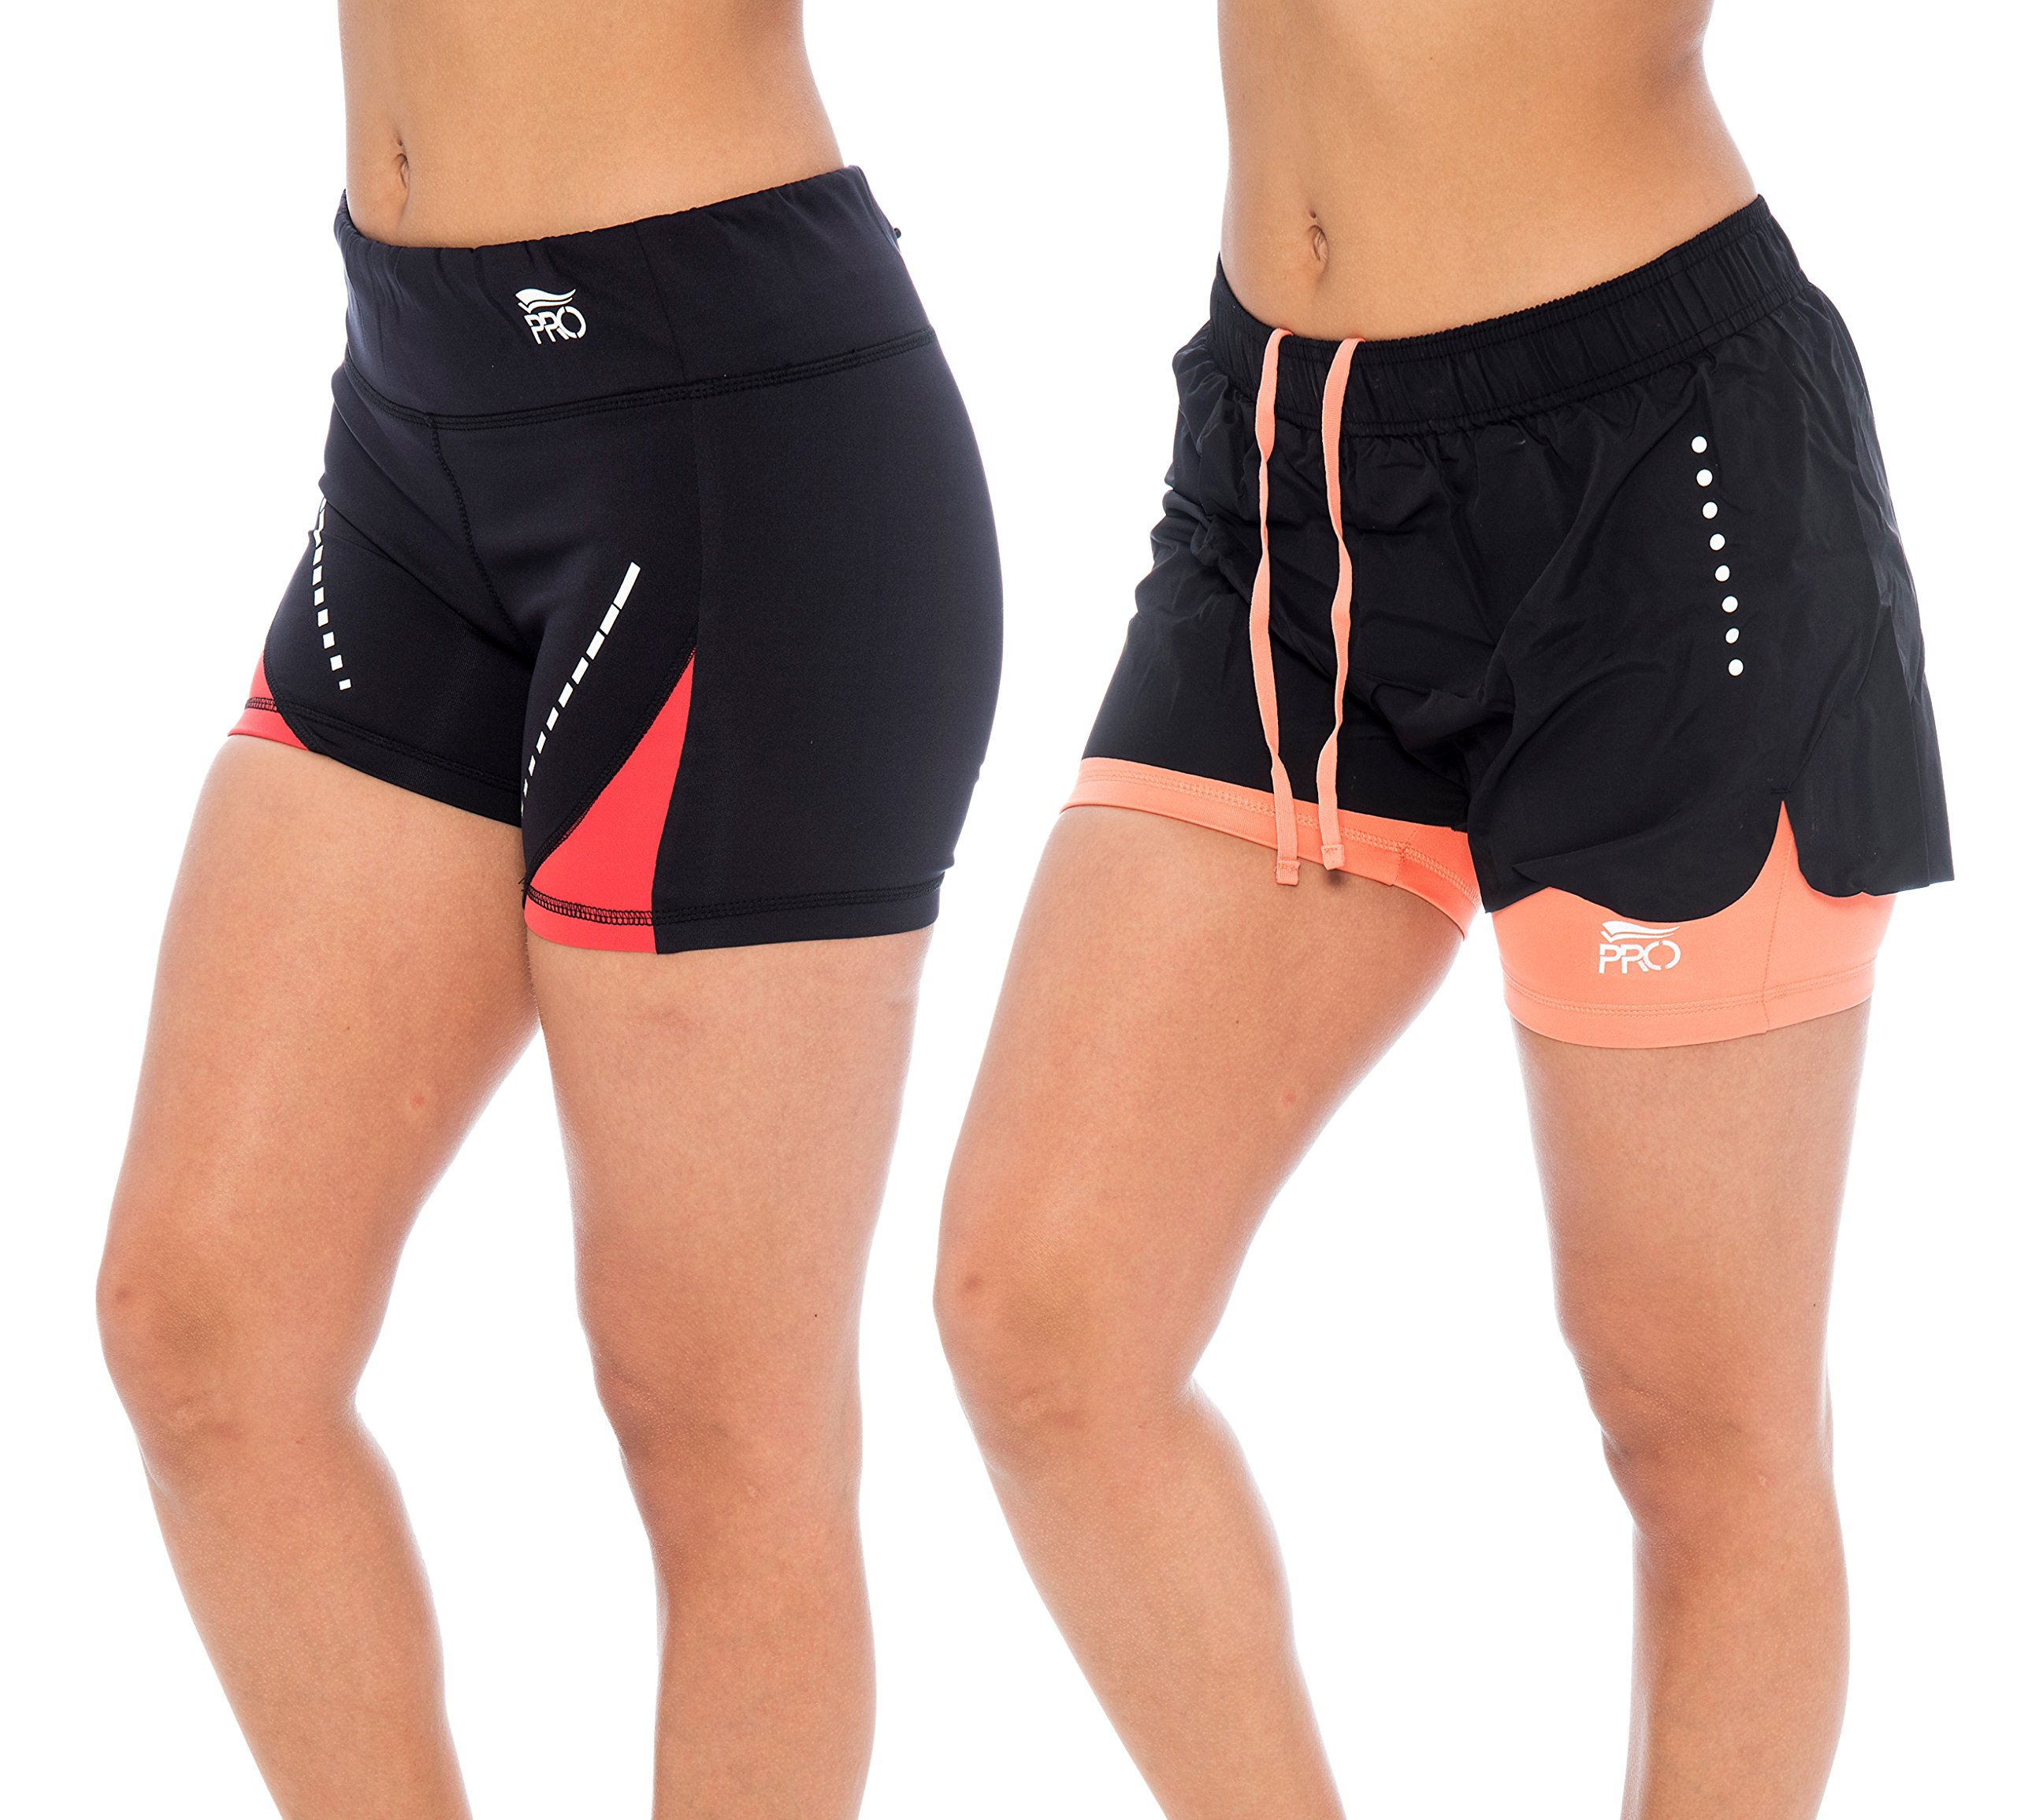 Unique Styles Women's Athletic Shorts Performance Wear Dri-fit Core Running - Assorted Colors (Medium, 2 Pack Black/Coral)